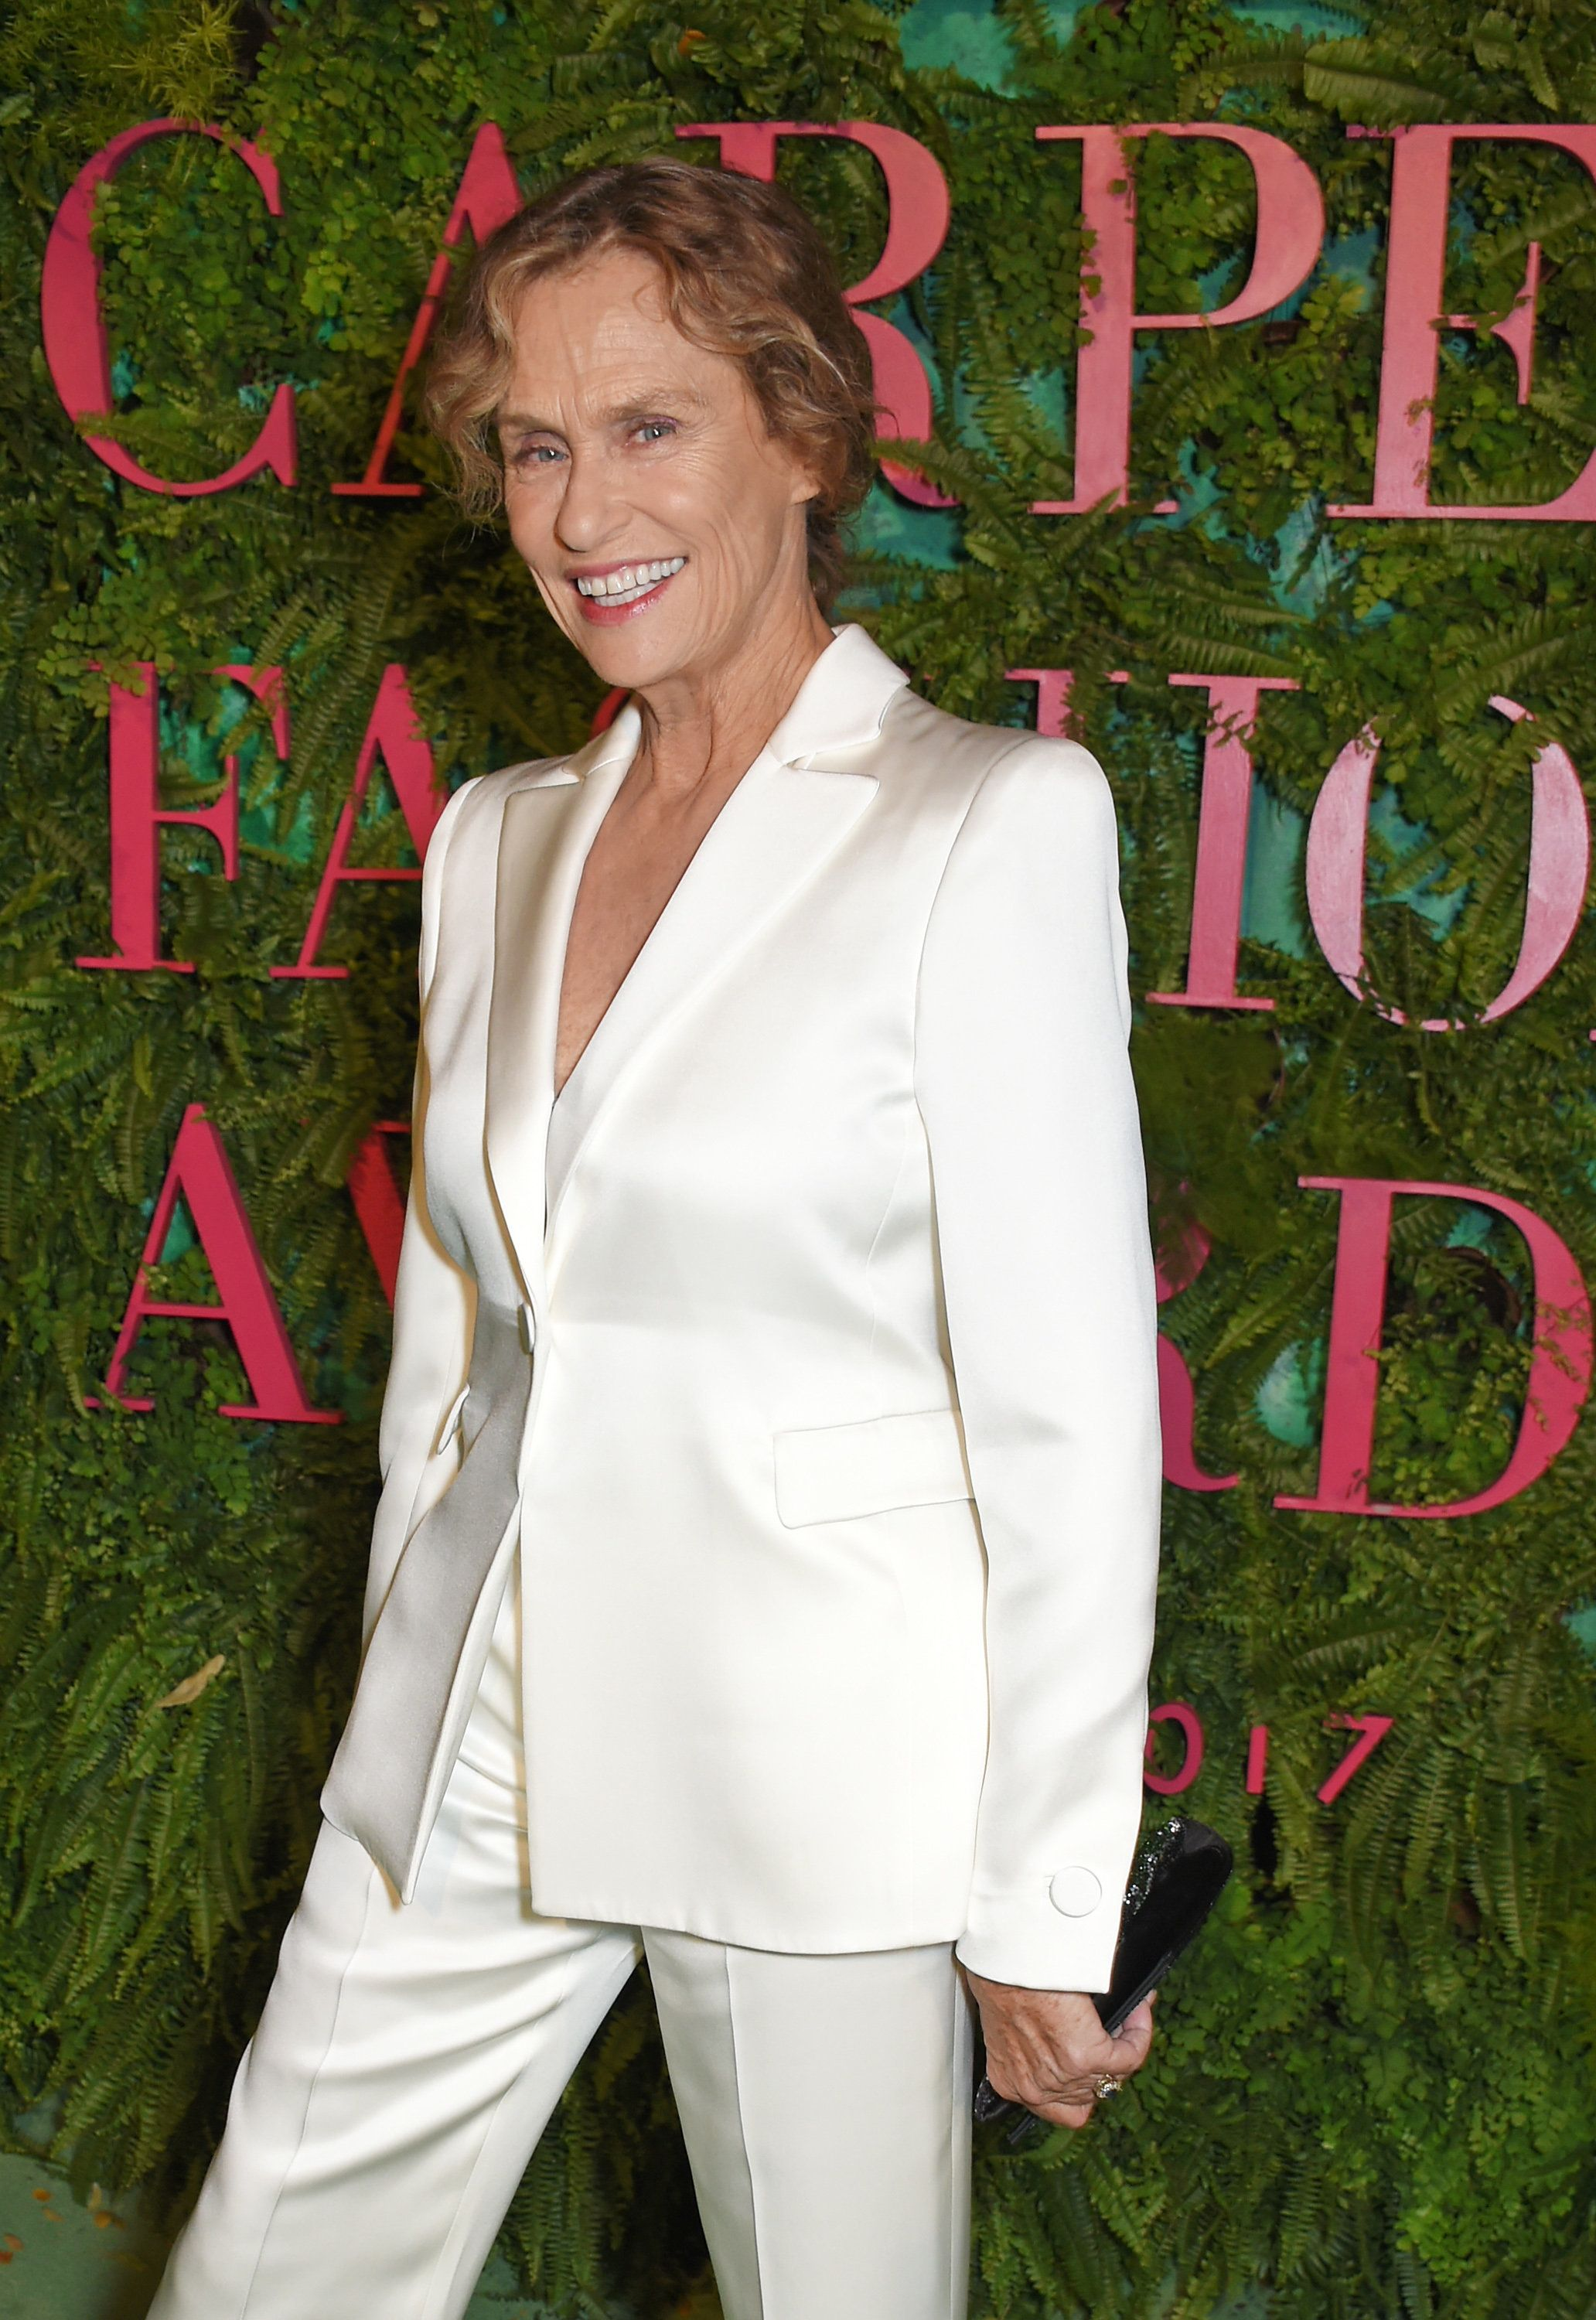 MILAN, ITALY - SEPTEMBER 24:  Lauren Hutton attends the Green Carpet Fashion Awards, Italia, wearing Giorgio Armani for the Green Carpet Challenge at Teatro Alla Scala on September 24, 2017 in Milan, Italy.  (Photo by David M. Benett/Dave Benett/Getty Images for Eco-Age)